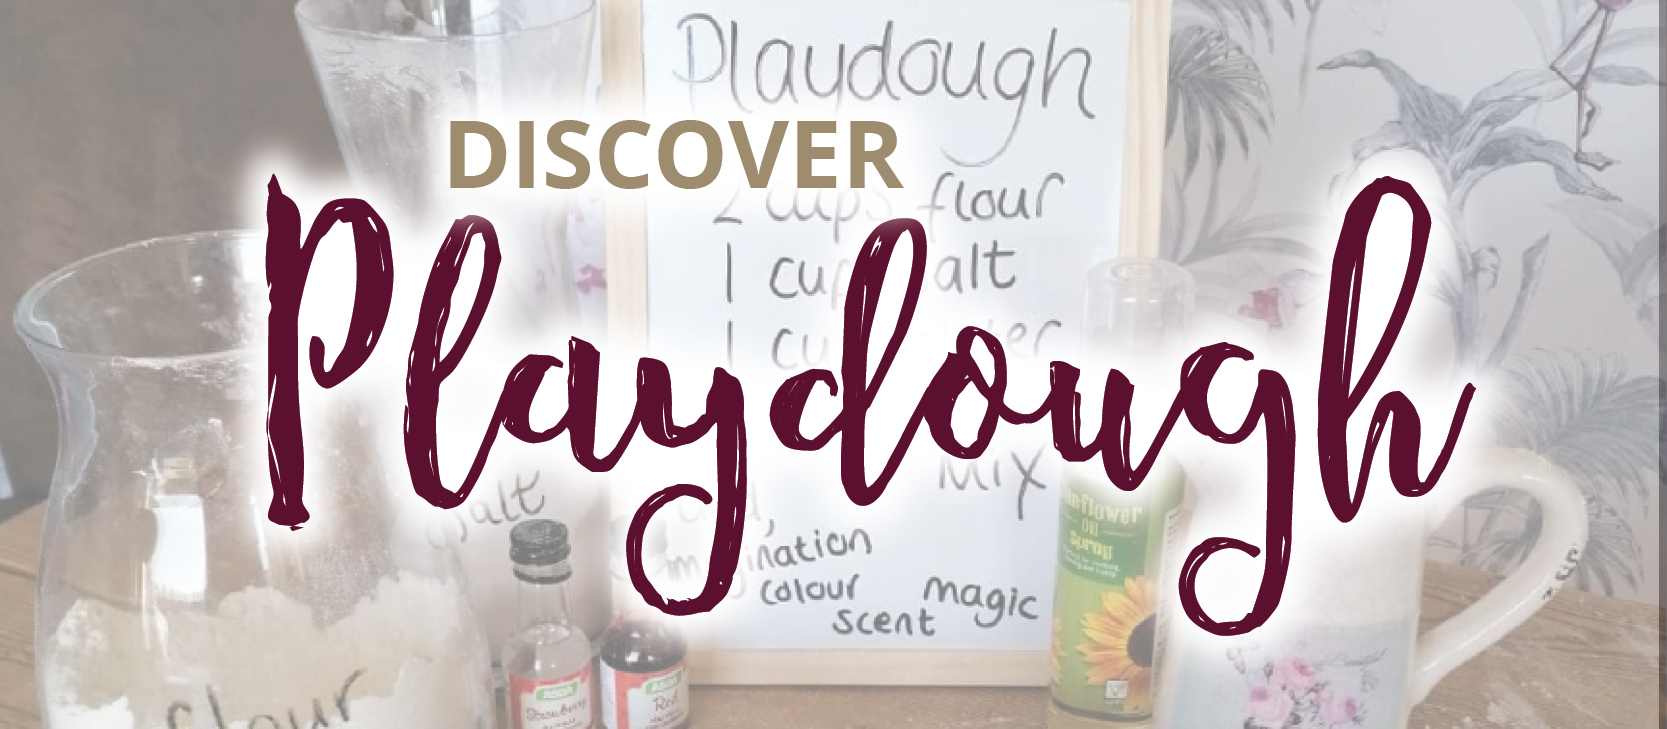 North Gloucestershire Network - Discover Magic of Playdough - 28/05/2022